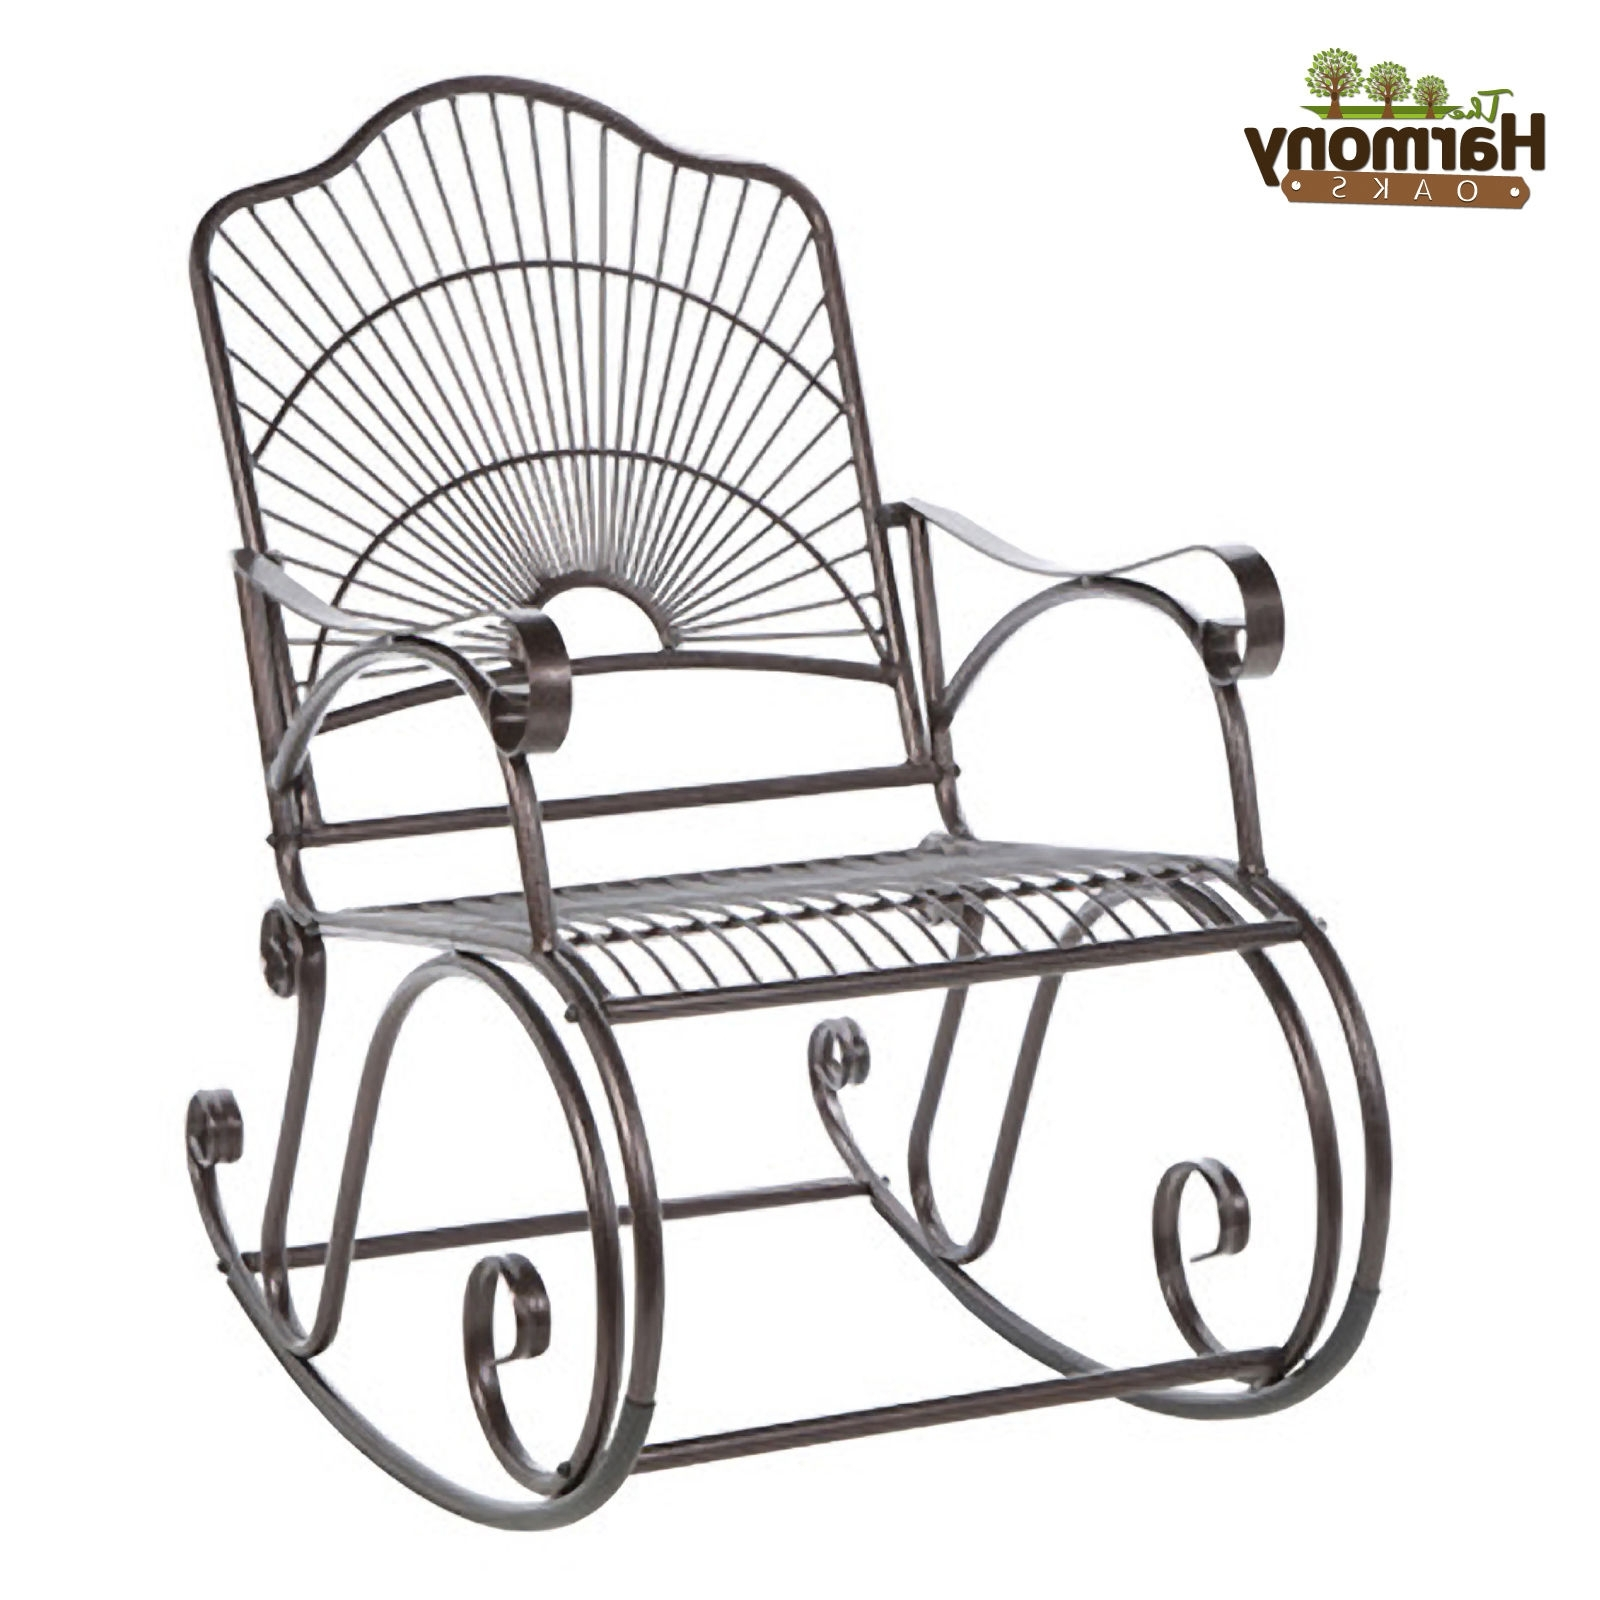 Rocker Wrought Iron Outdoor Patio Porch New Furniture Wrought Iron Within Widely Used Iron Rocking Patio Chairs (View 15 of 15)